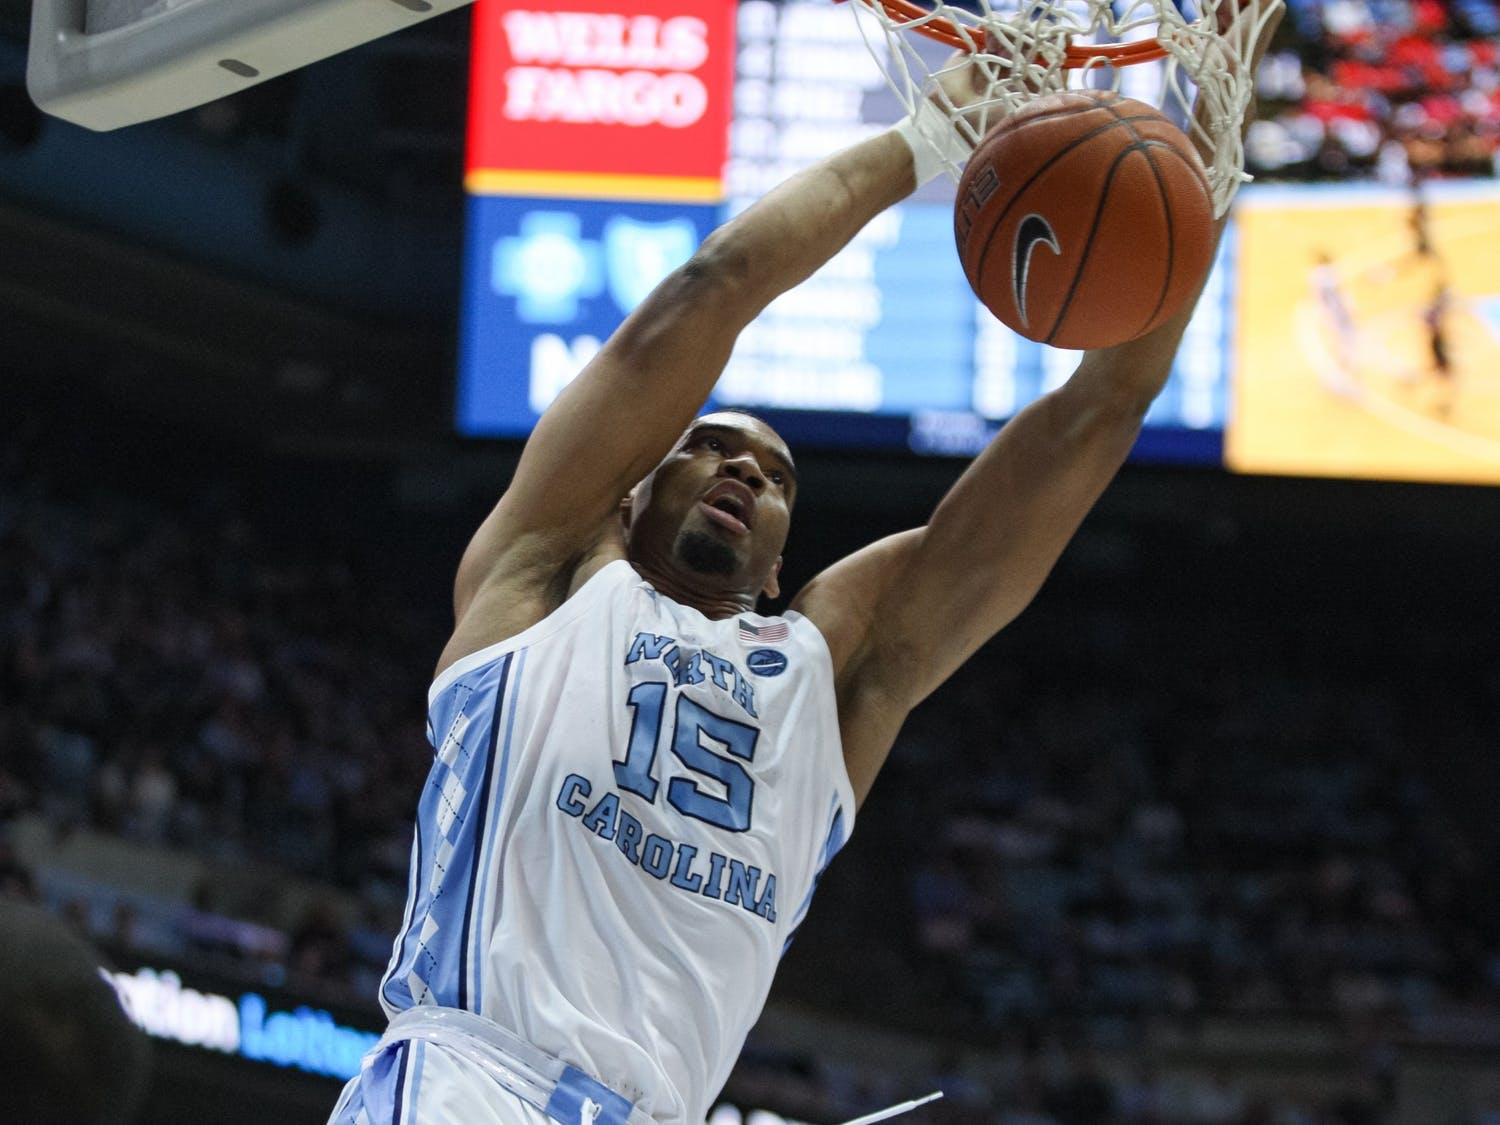 UNC's junior forward Garrison Brooks (15) dunks the ball during a game against Gardner-Webb on Friday, Nov. 15, 2019.